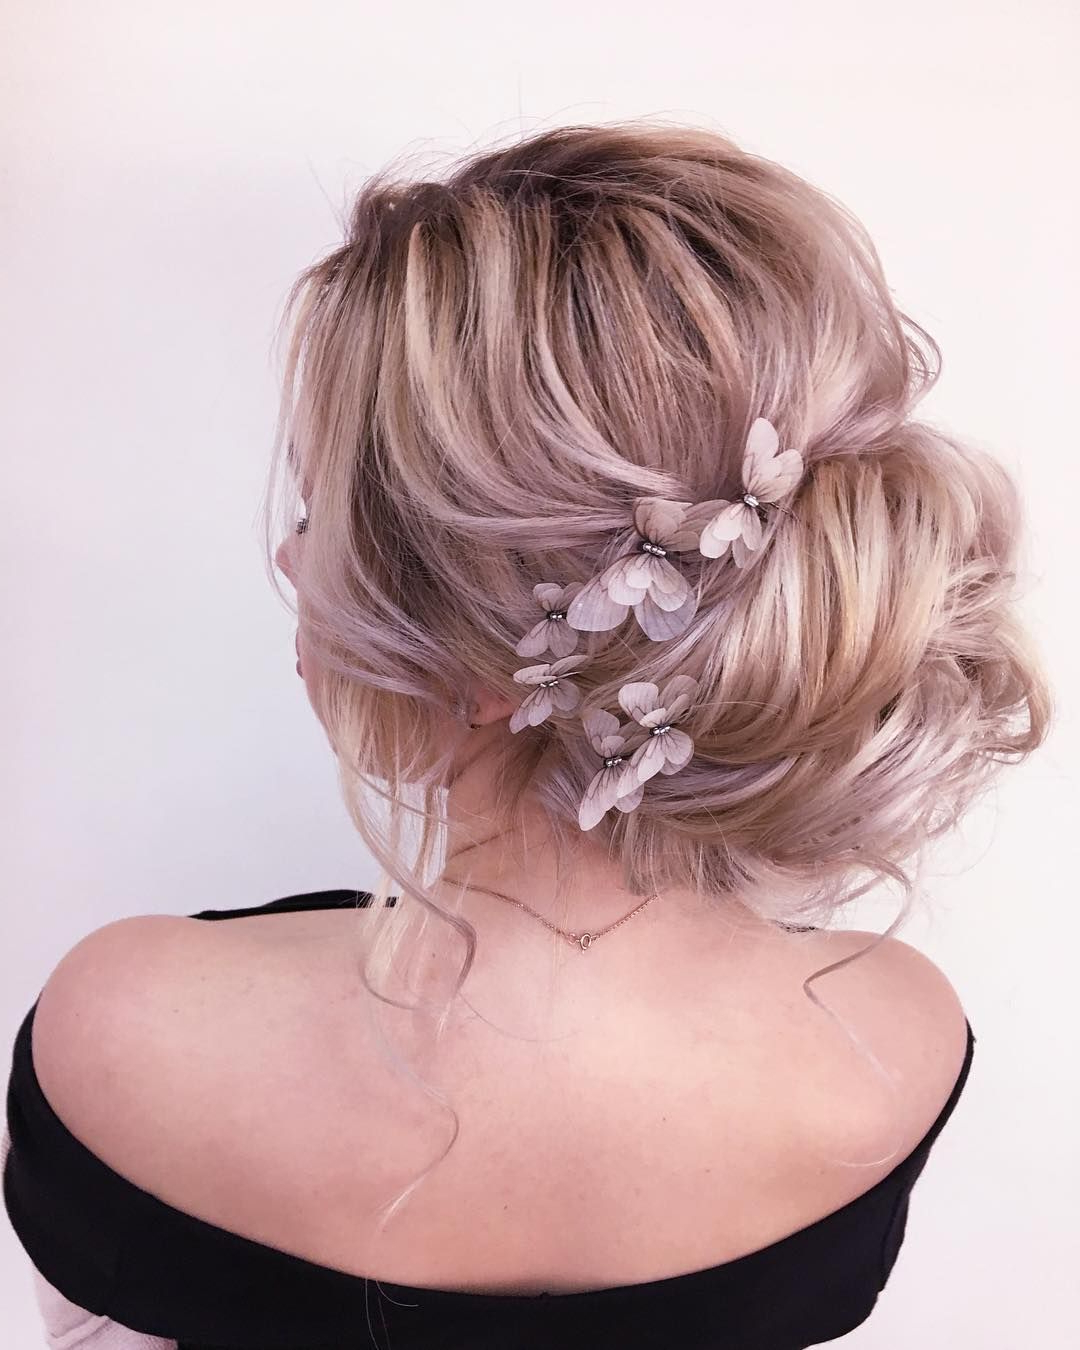 Popular Messy Bridal Updo Bridal Hairstyles Throughout 79 Beautiful Bridal Updos Wedding Hairstyles For A Romantic Bridal (View 15 of 20)